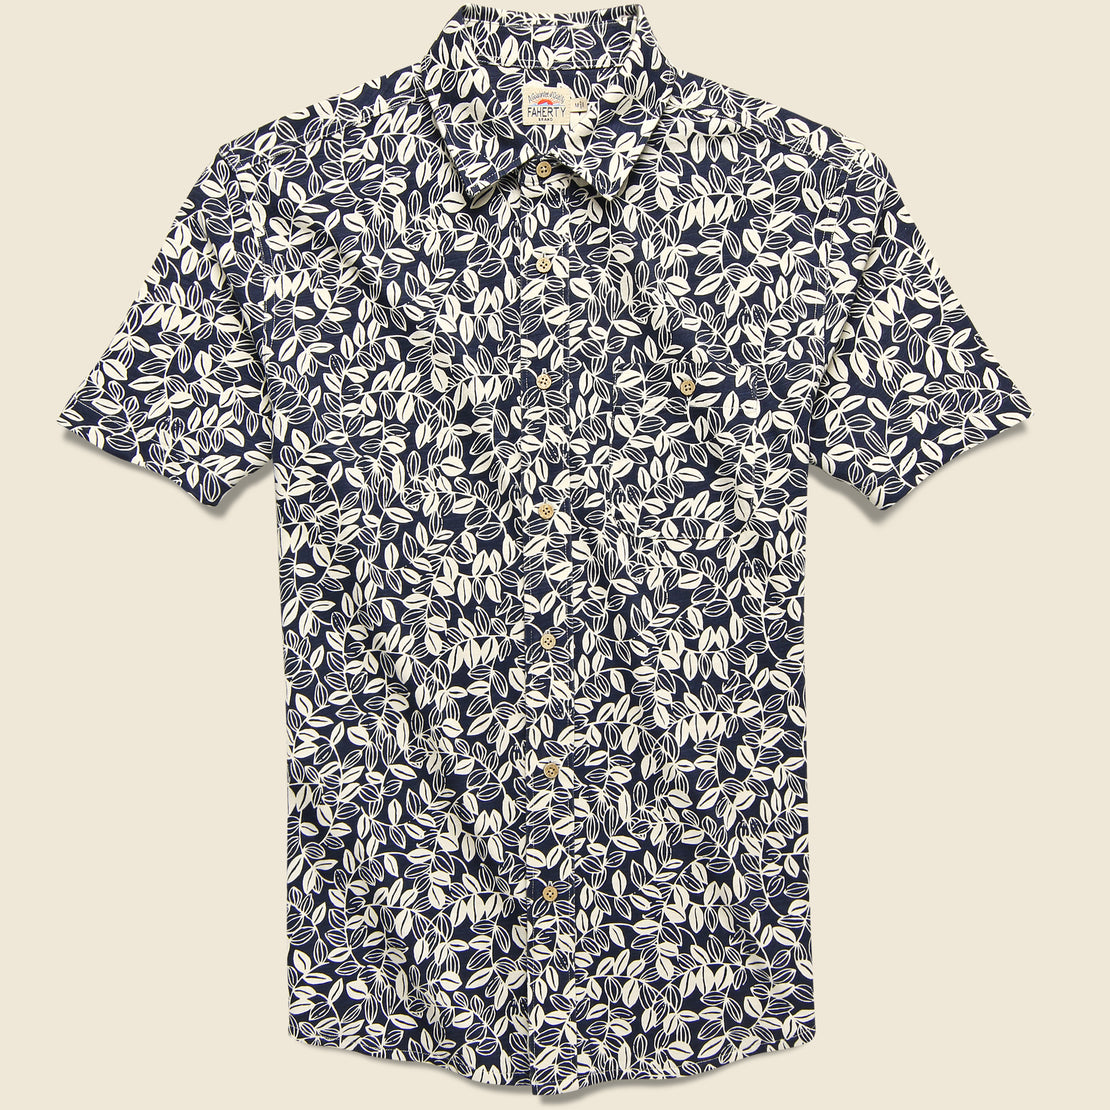 Faherty Knit Seasons Shirt - Navy Avallinas Print